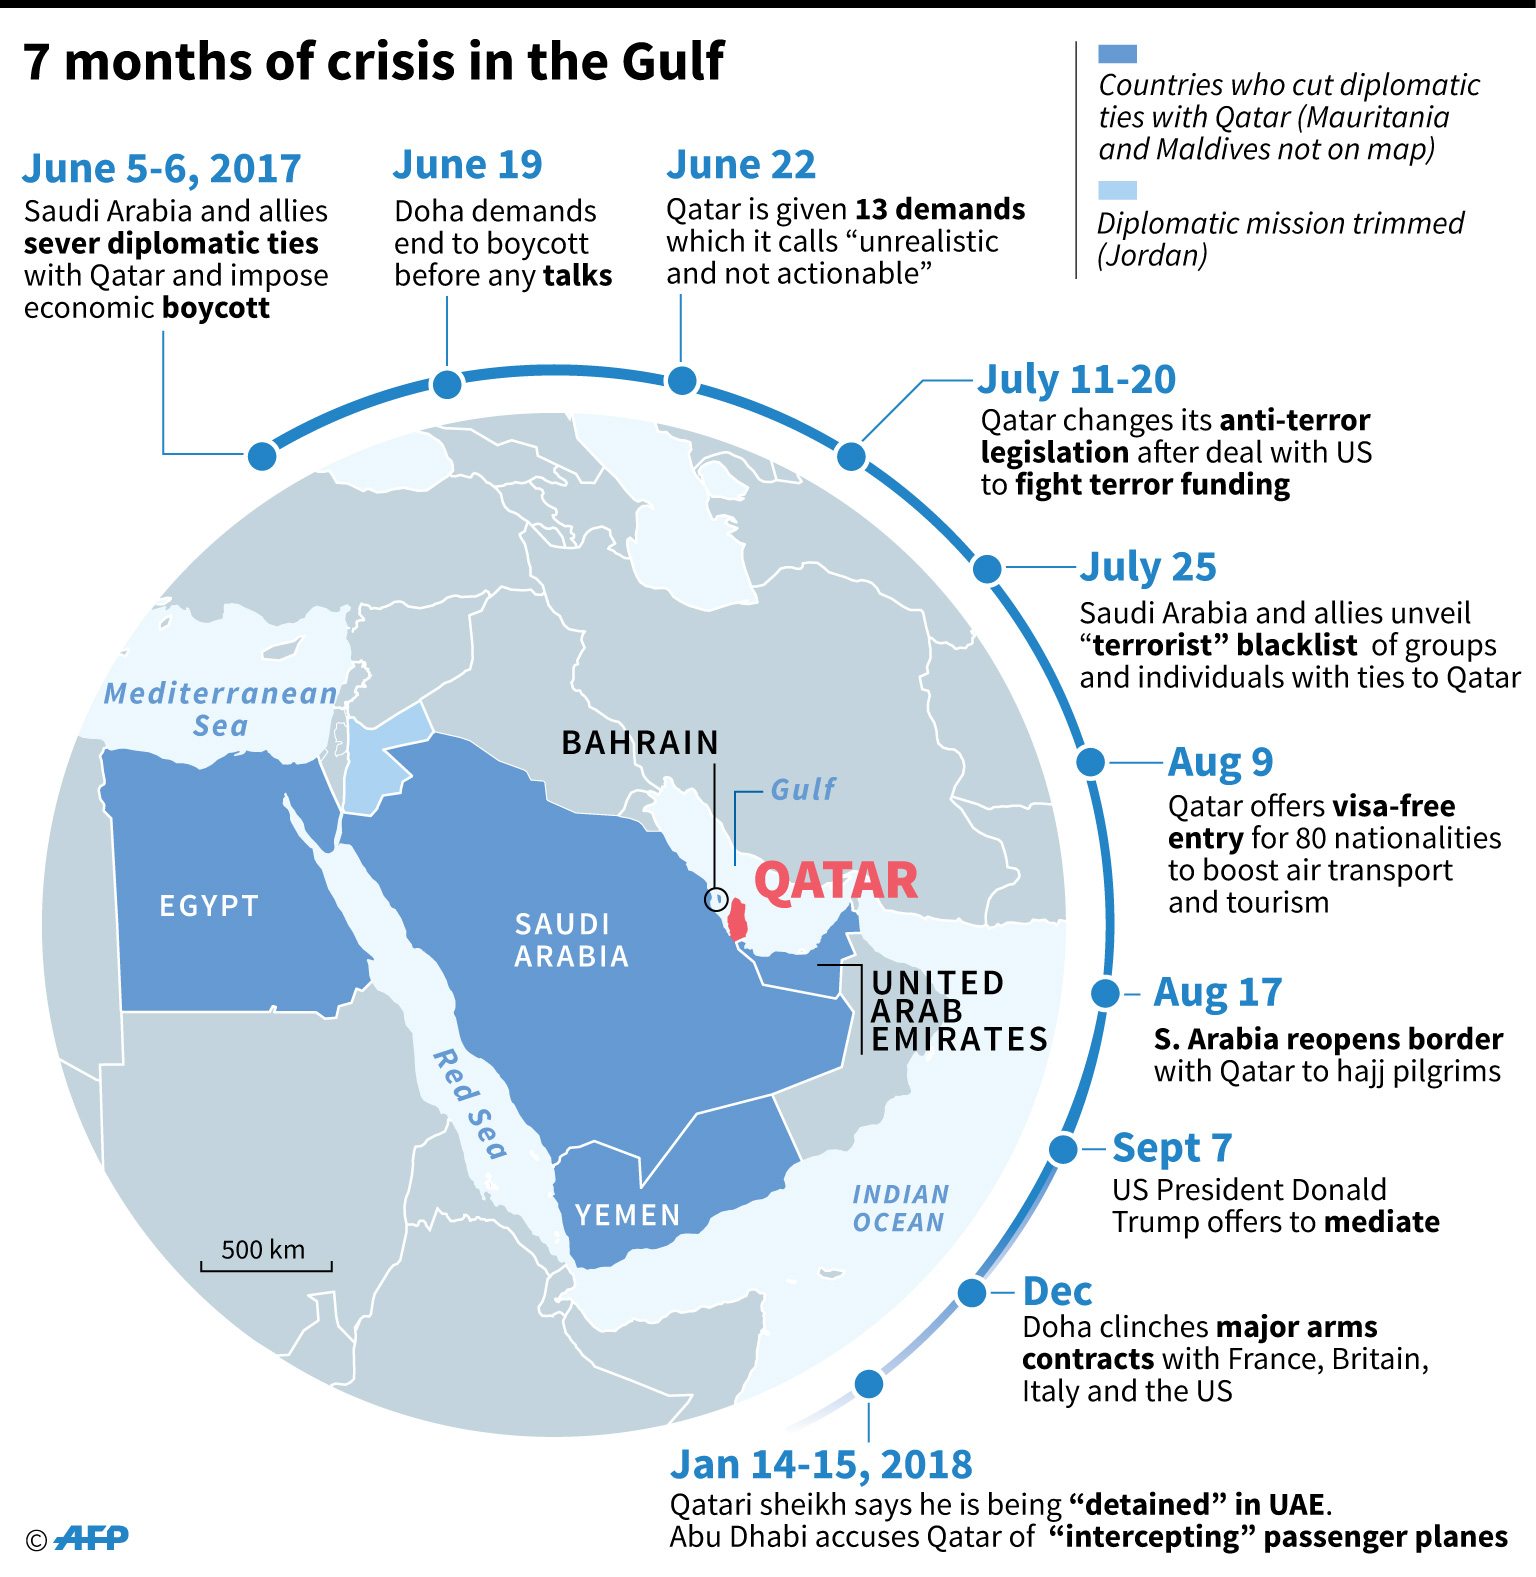 A timeline of developments in the diplomatic crisis opposing Qatar with Saudi Arabia and its allies for the past seven months.